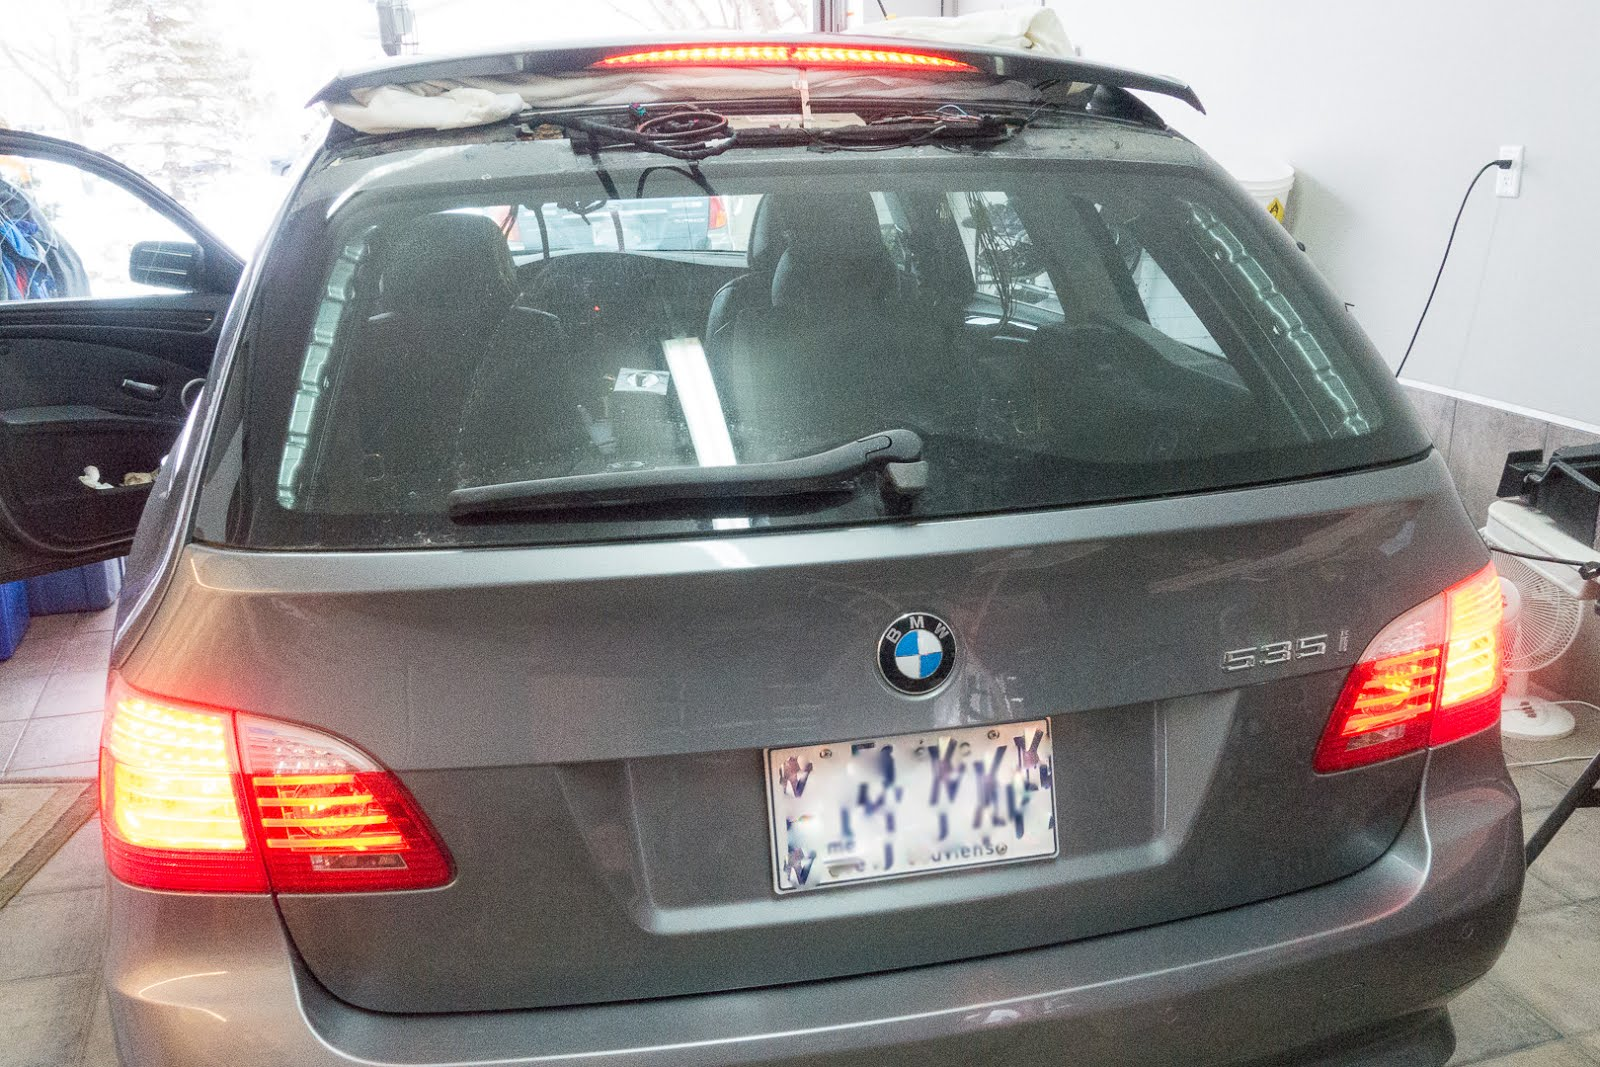 The Fix It Blog Sorting Things Out Bmw 535xi Touring E61 Tailgate Wiring Loom Tape Test All Functions Prior To Re Installing Rear Spoiler Or Replacing Any Of Harnesses Trims